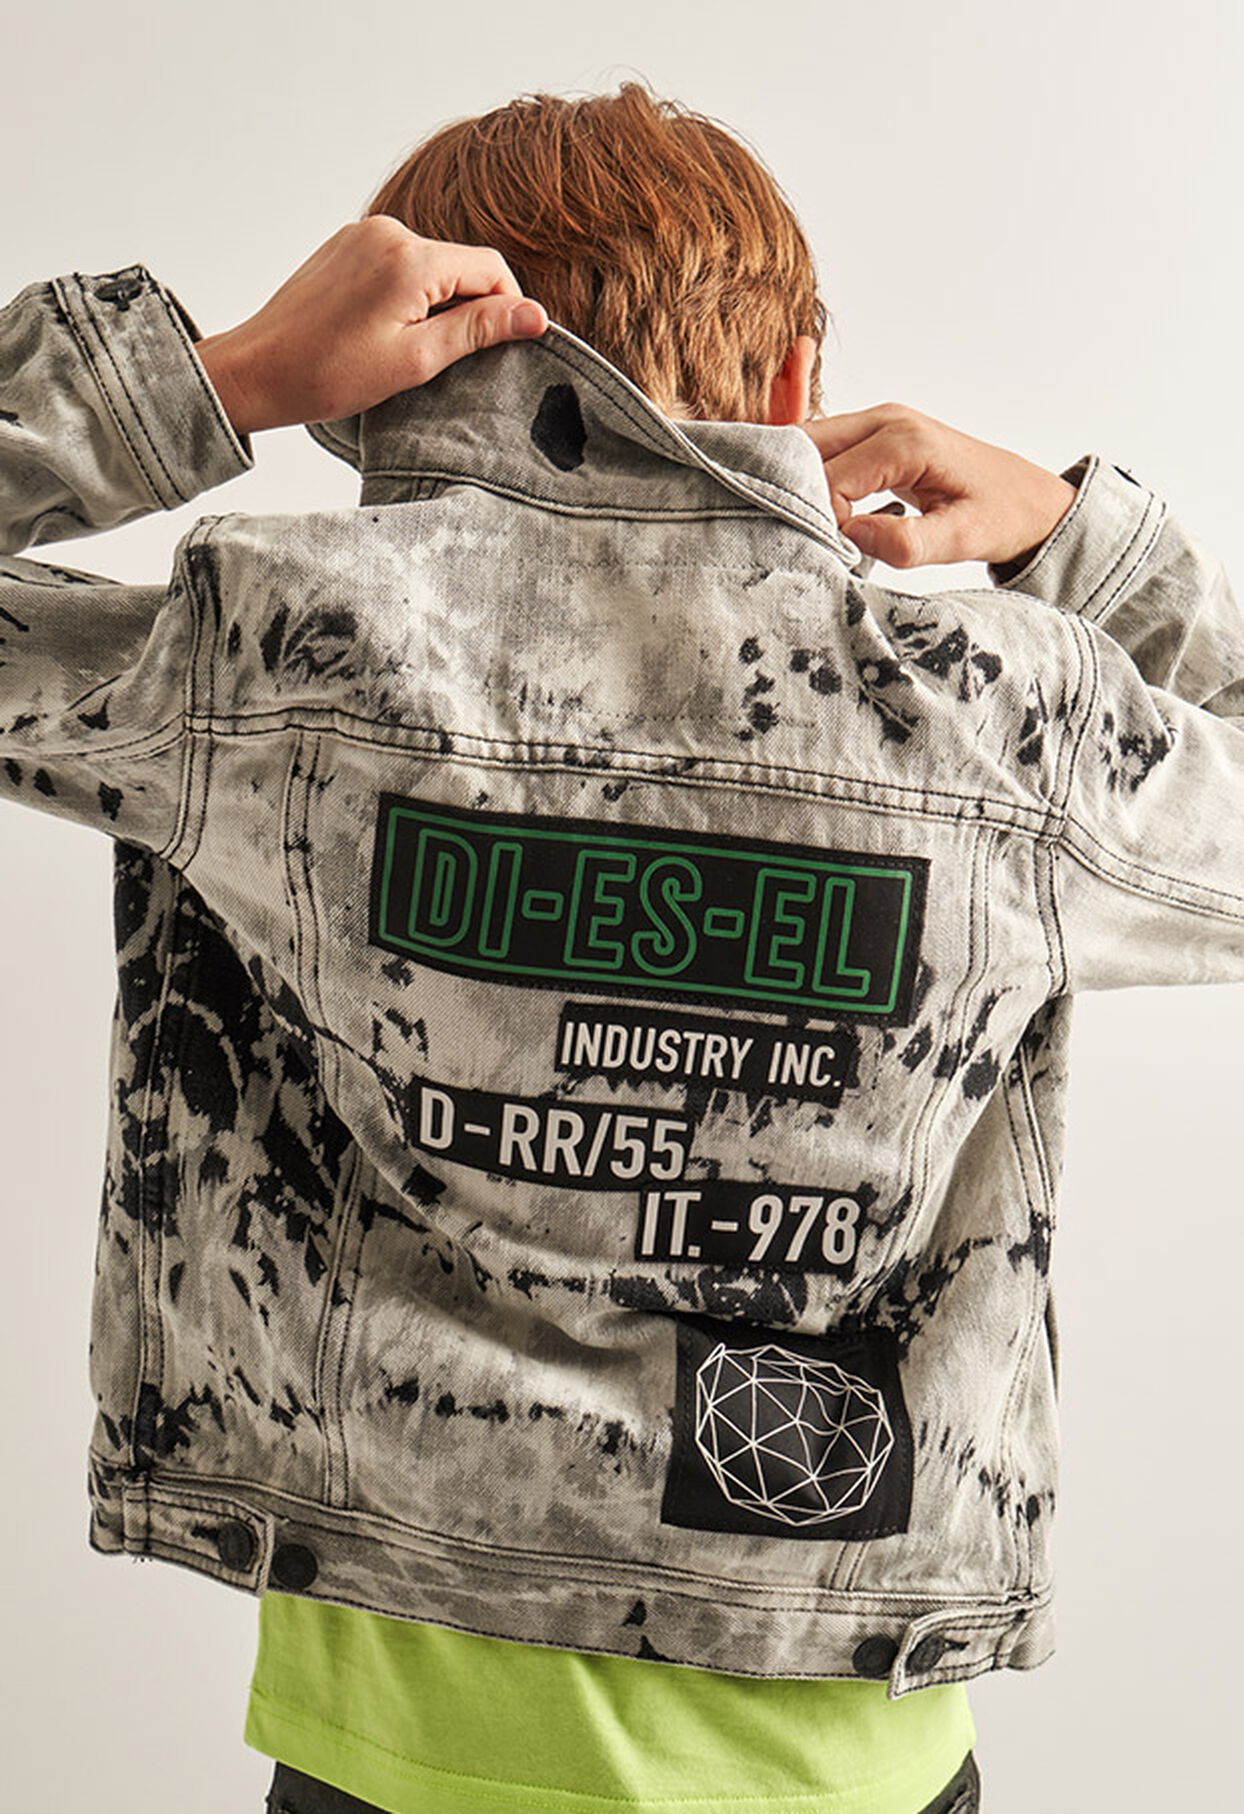 https://global.diesel.com/dw/image/v2/BBLG_PRD/on/demandware.static/-/Library-Sites-DieselMFSharedLibrary/default/dw9fd09078/CATEGORYOV/2x2_90.jpg?sw=1244&sh=1814